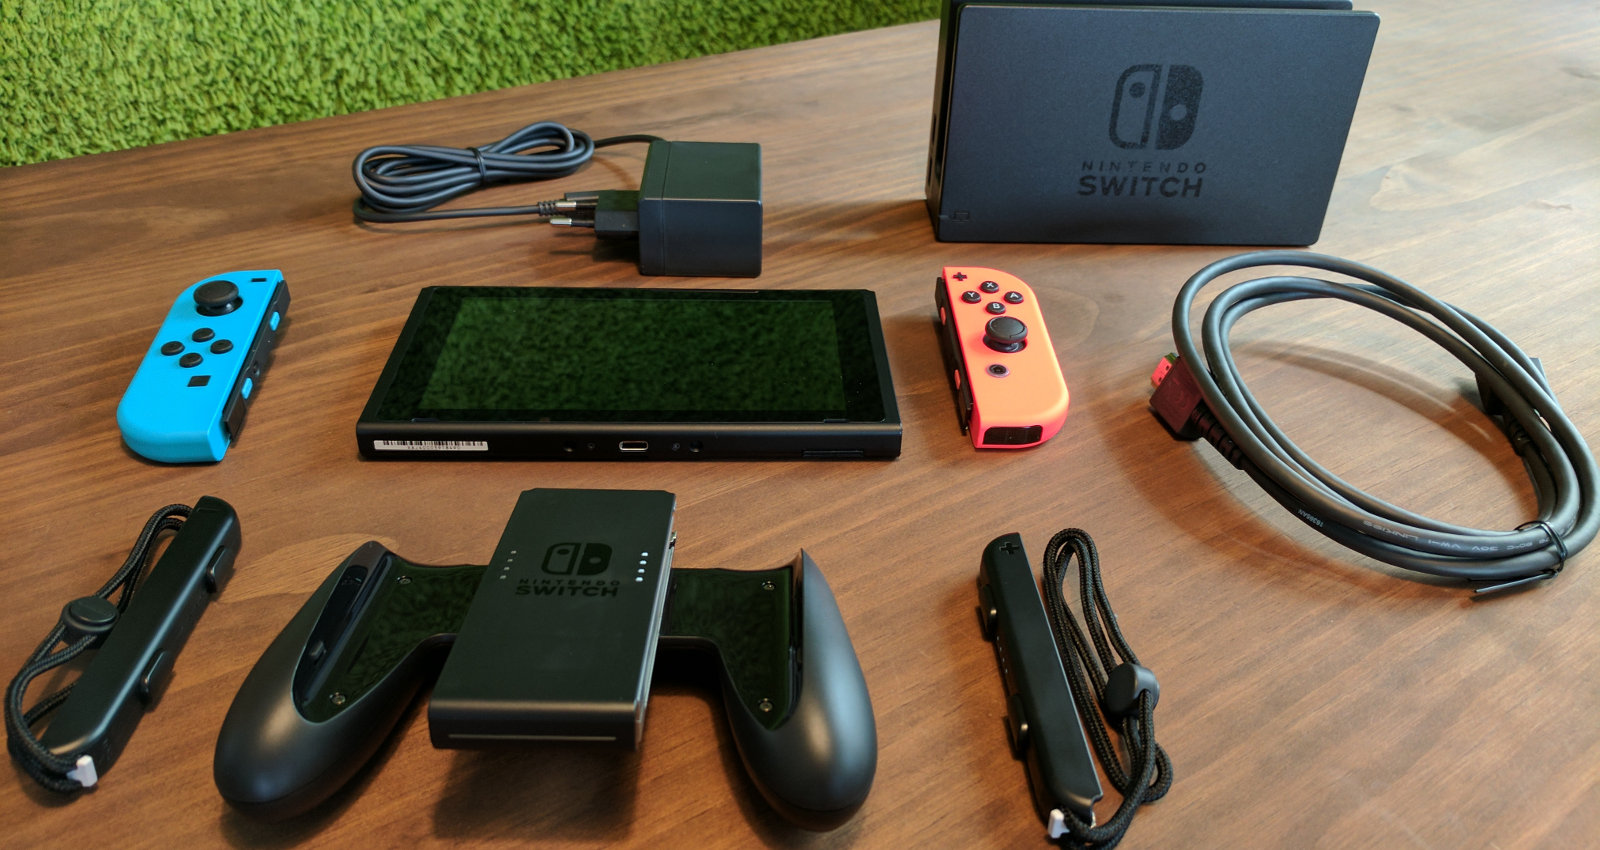 Nintendo Switch Inhalt des Kartons